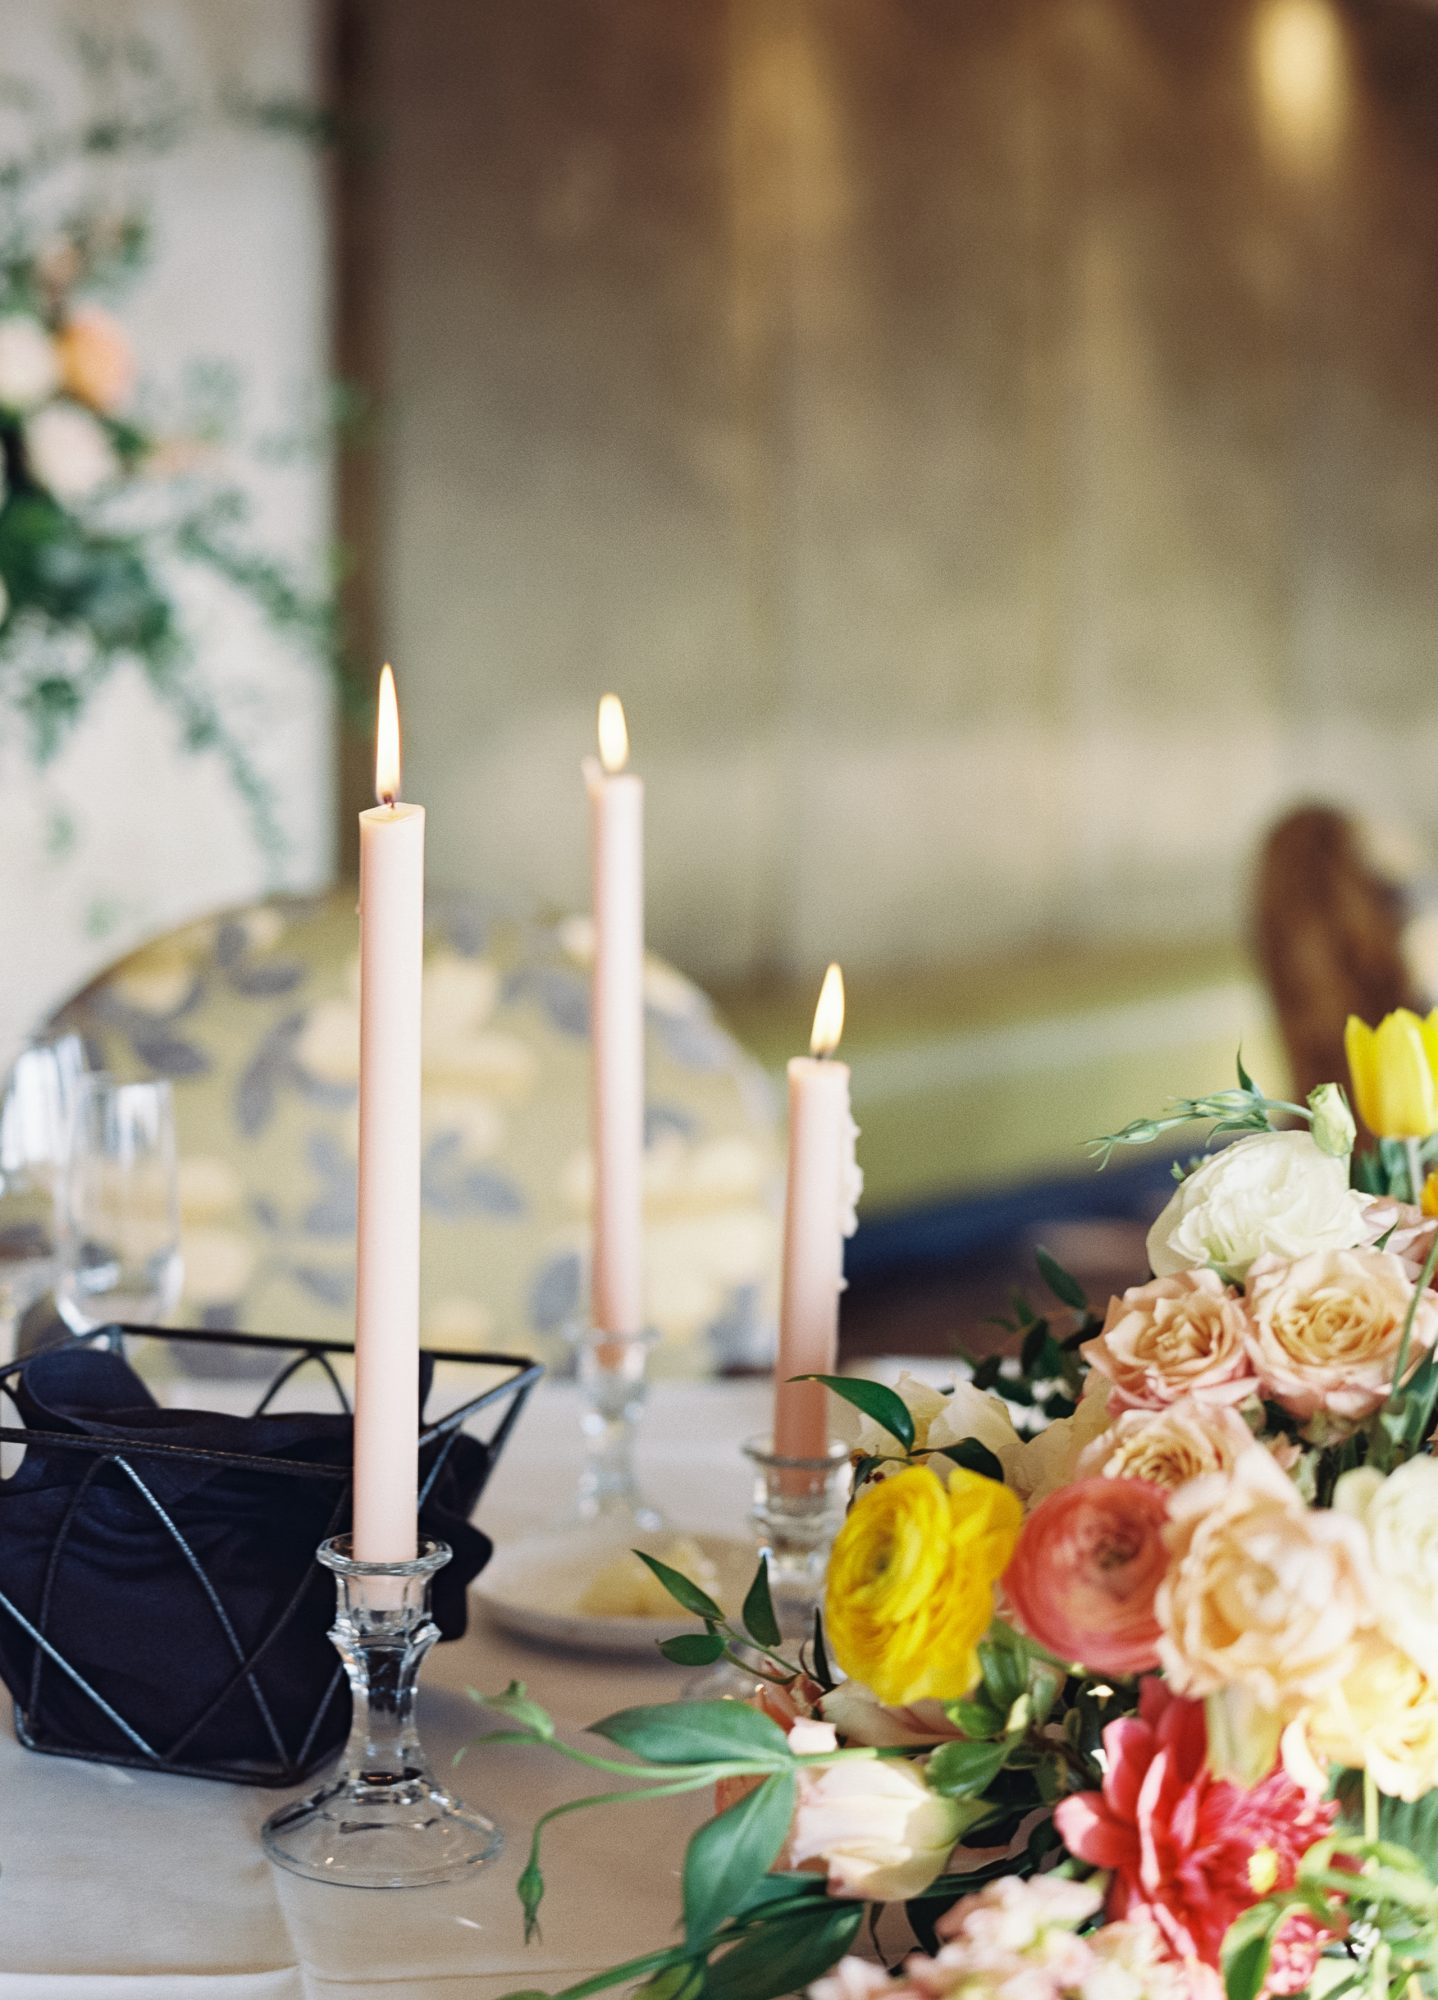 wedding tabletop with candles and flowers